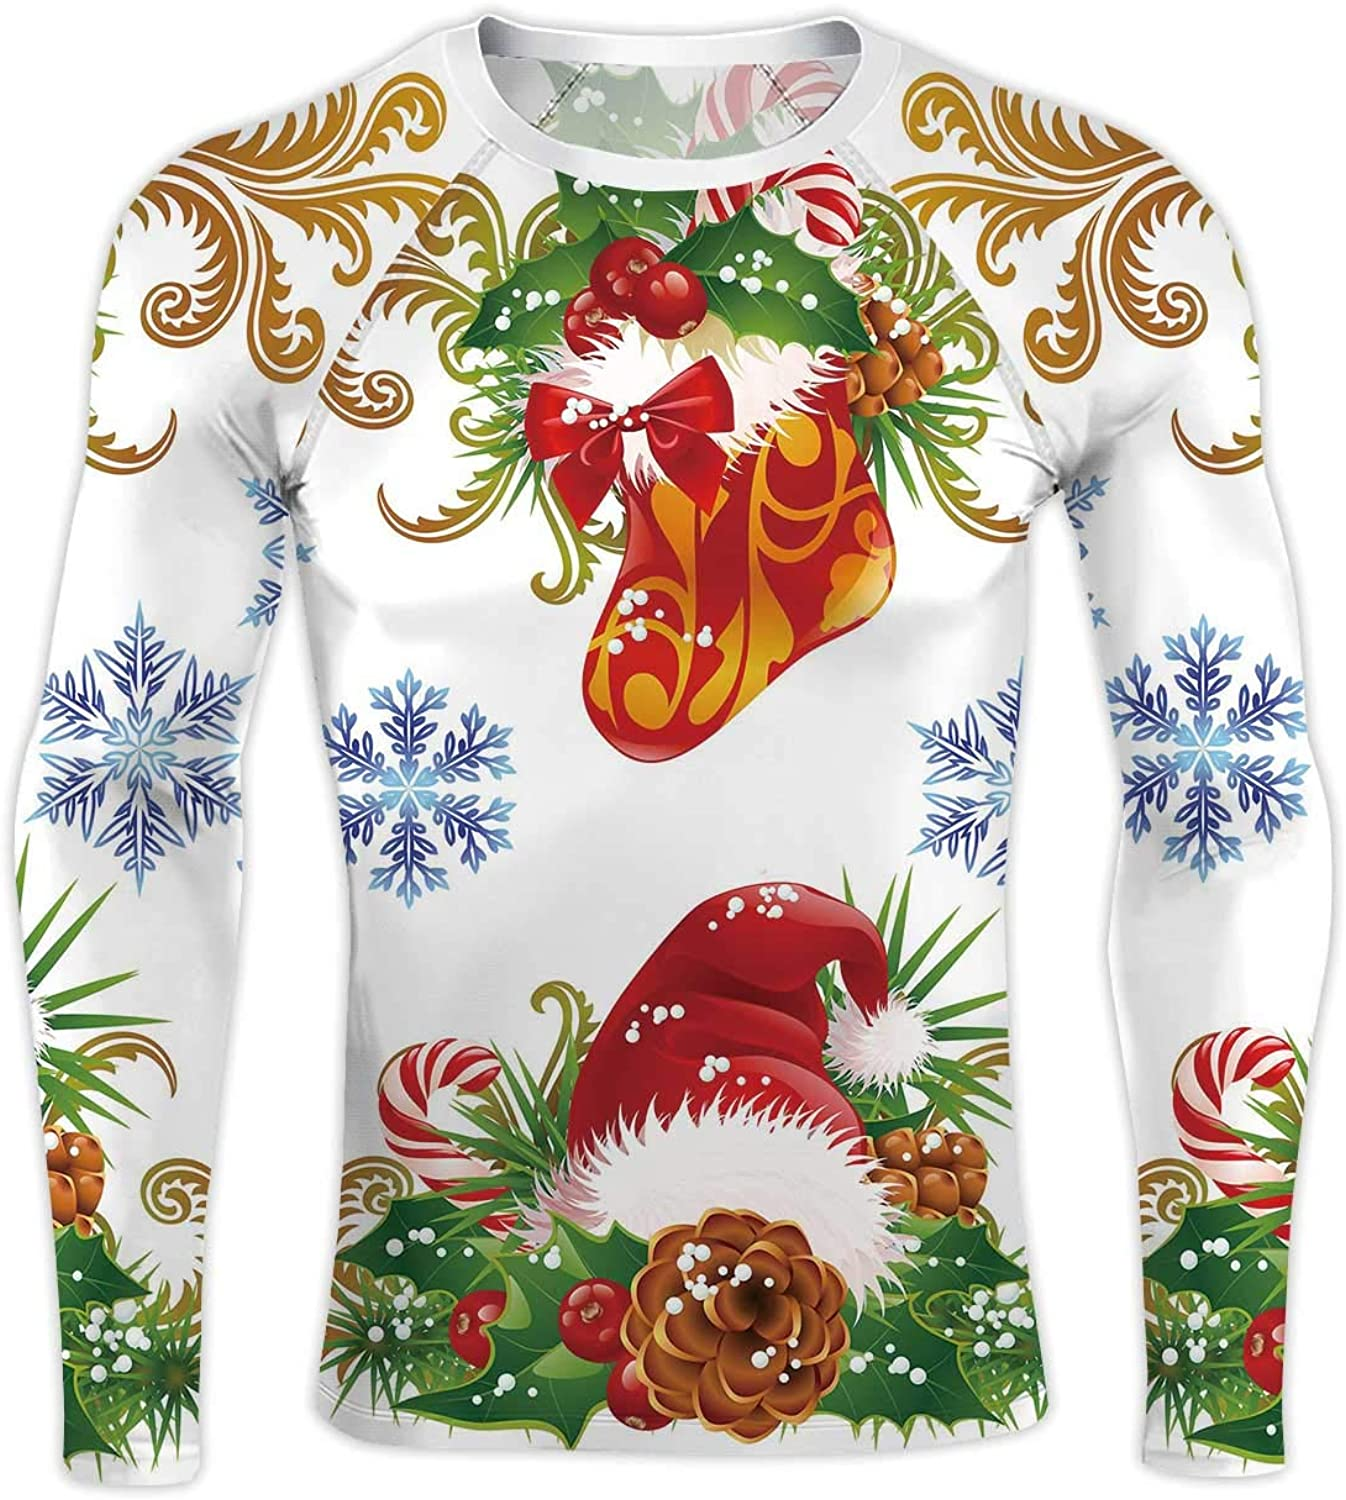 Pet Dog Puppy Doing his Toilet Hungary,Compression Baselayer Tops Long Sleeve T-Shirts Animal S